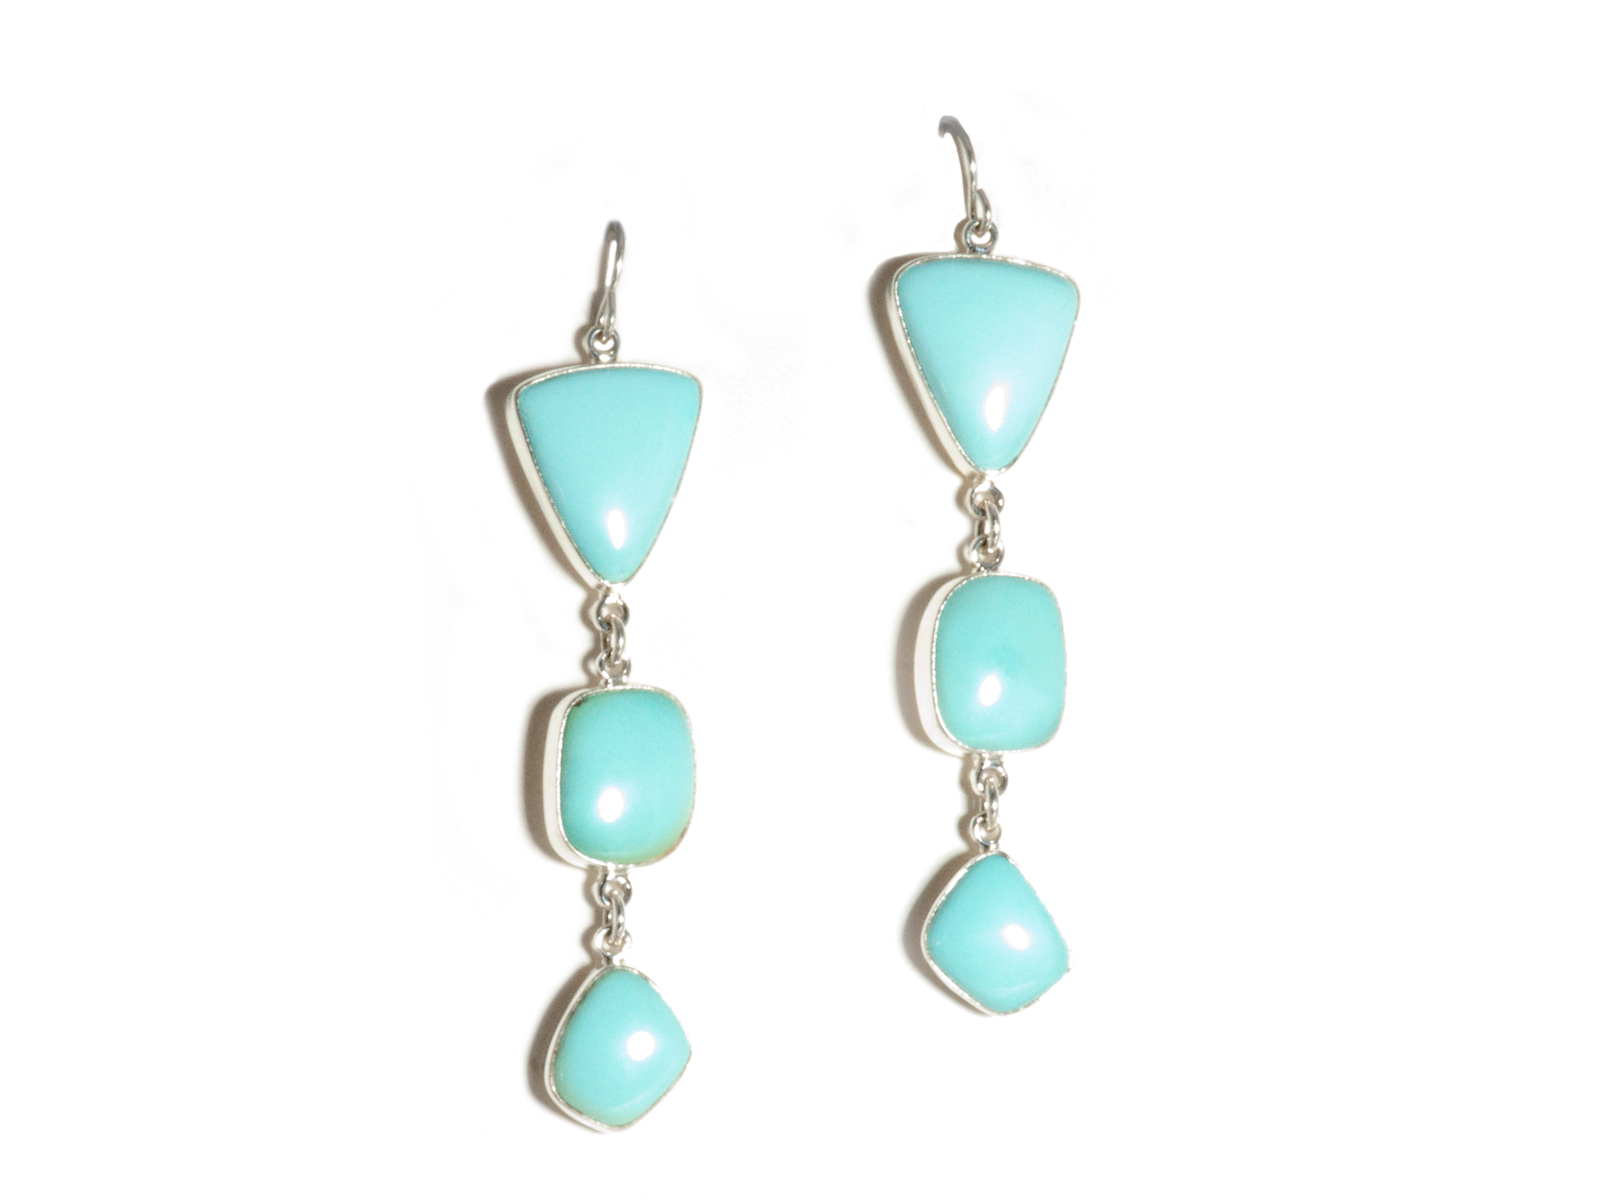 Triple Turquoise Drop Earrings